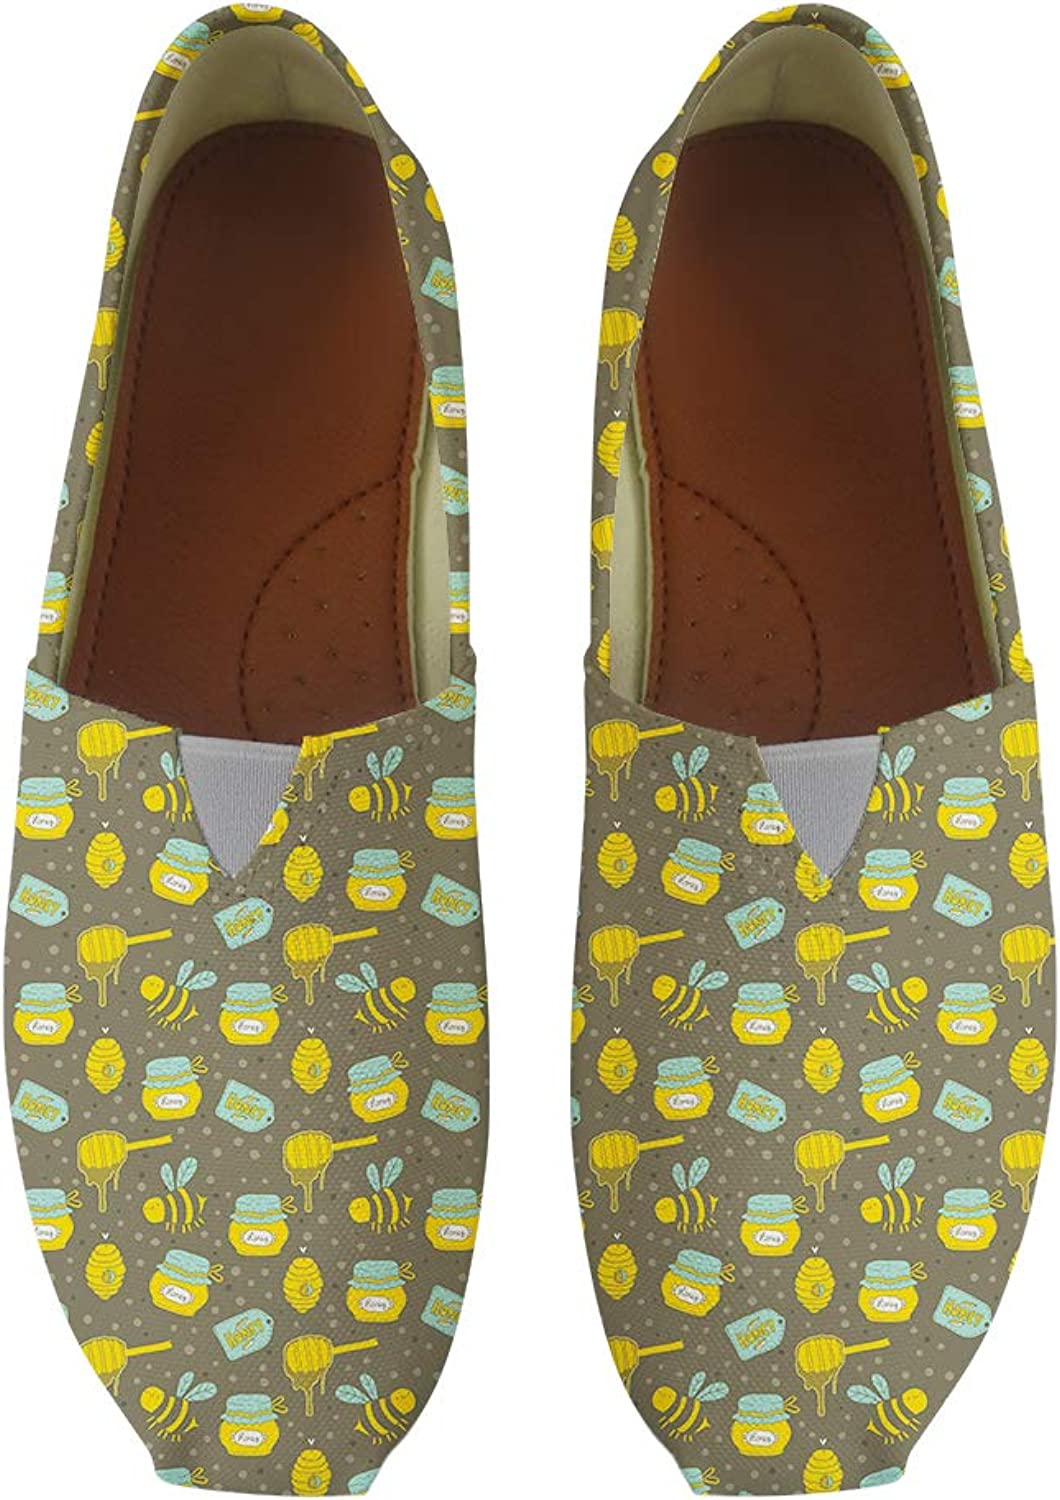 Owaheson Classic Canvas Slip-On Lightweight Driving shoes Soft Penny Loafers Men Women Honey Honeycomb Smiling Bee